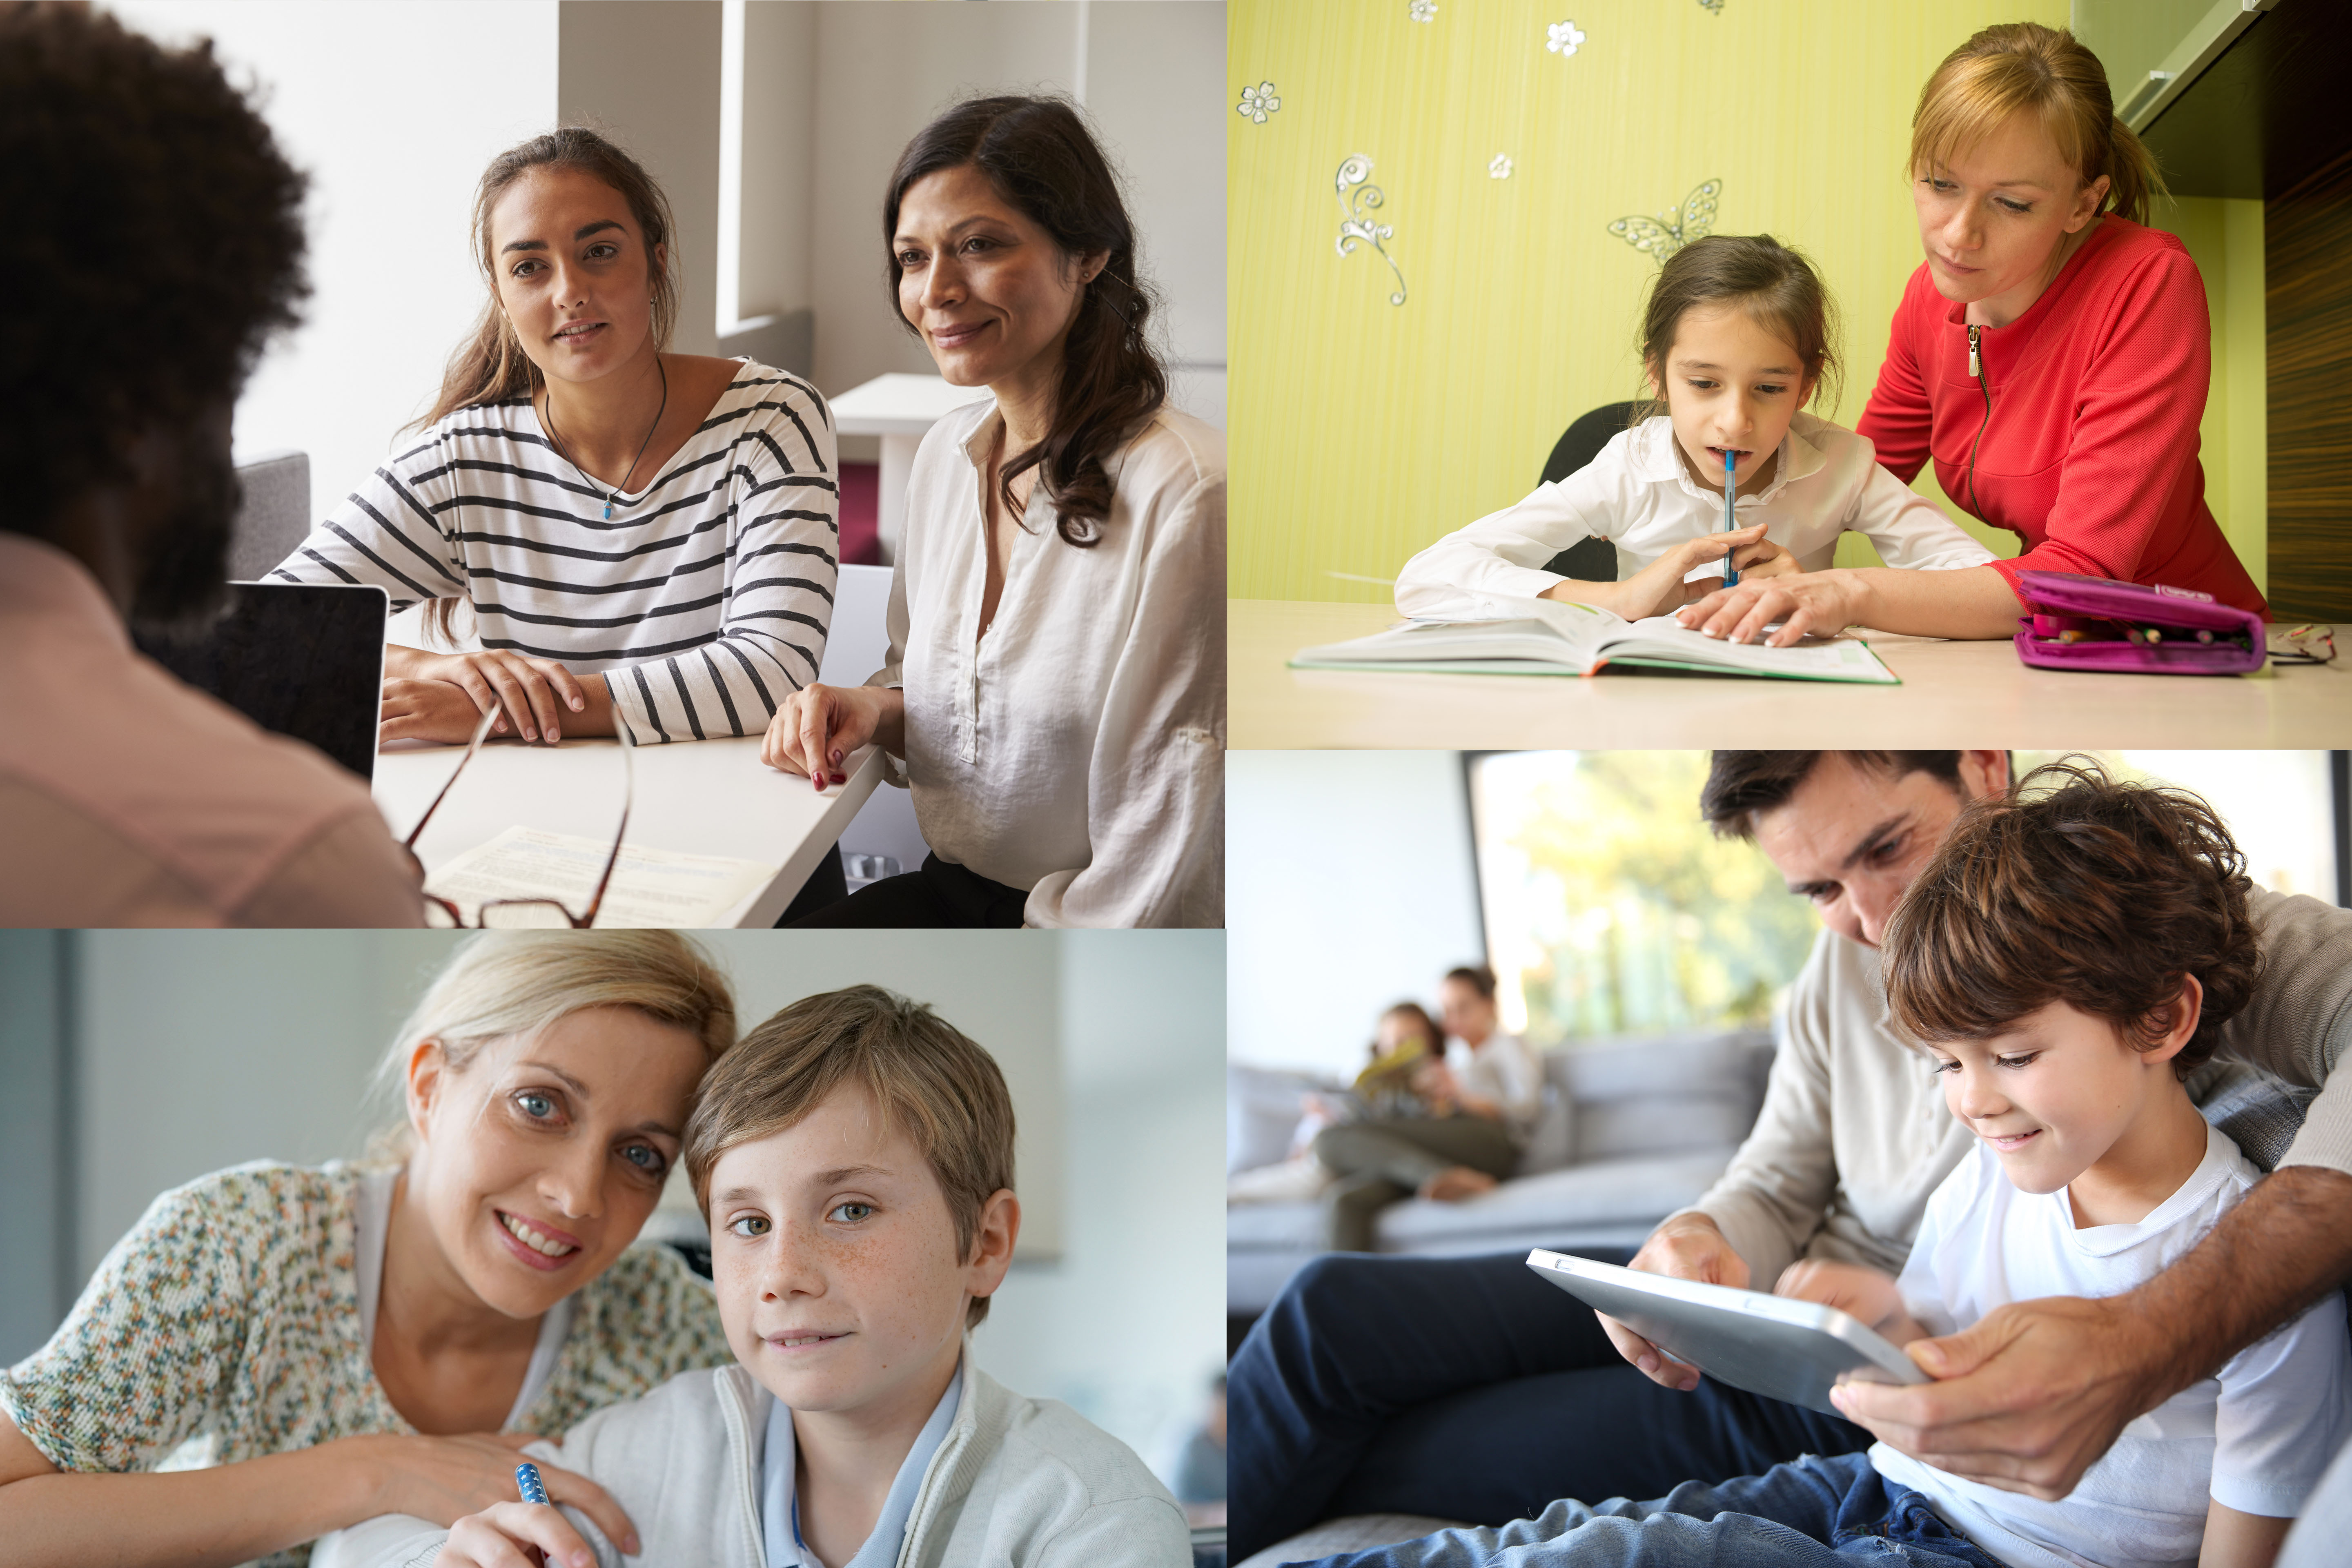 the role of parents and media Parents, like non-parents, use a variety of social media platforms this survey also took a broad look at the social media habits of parents among internet-using parents, 3 social media use across a variety of platforms is common.